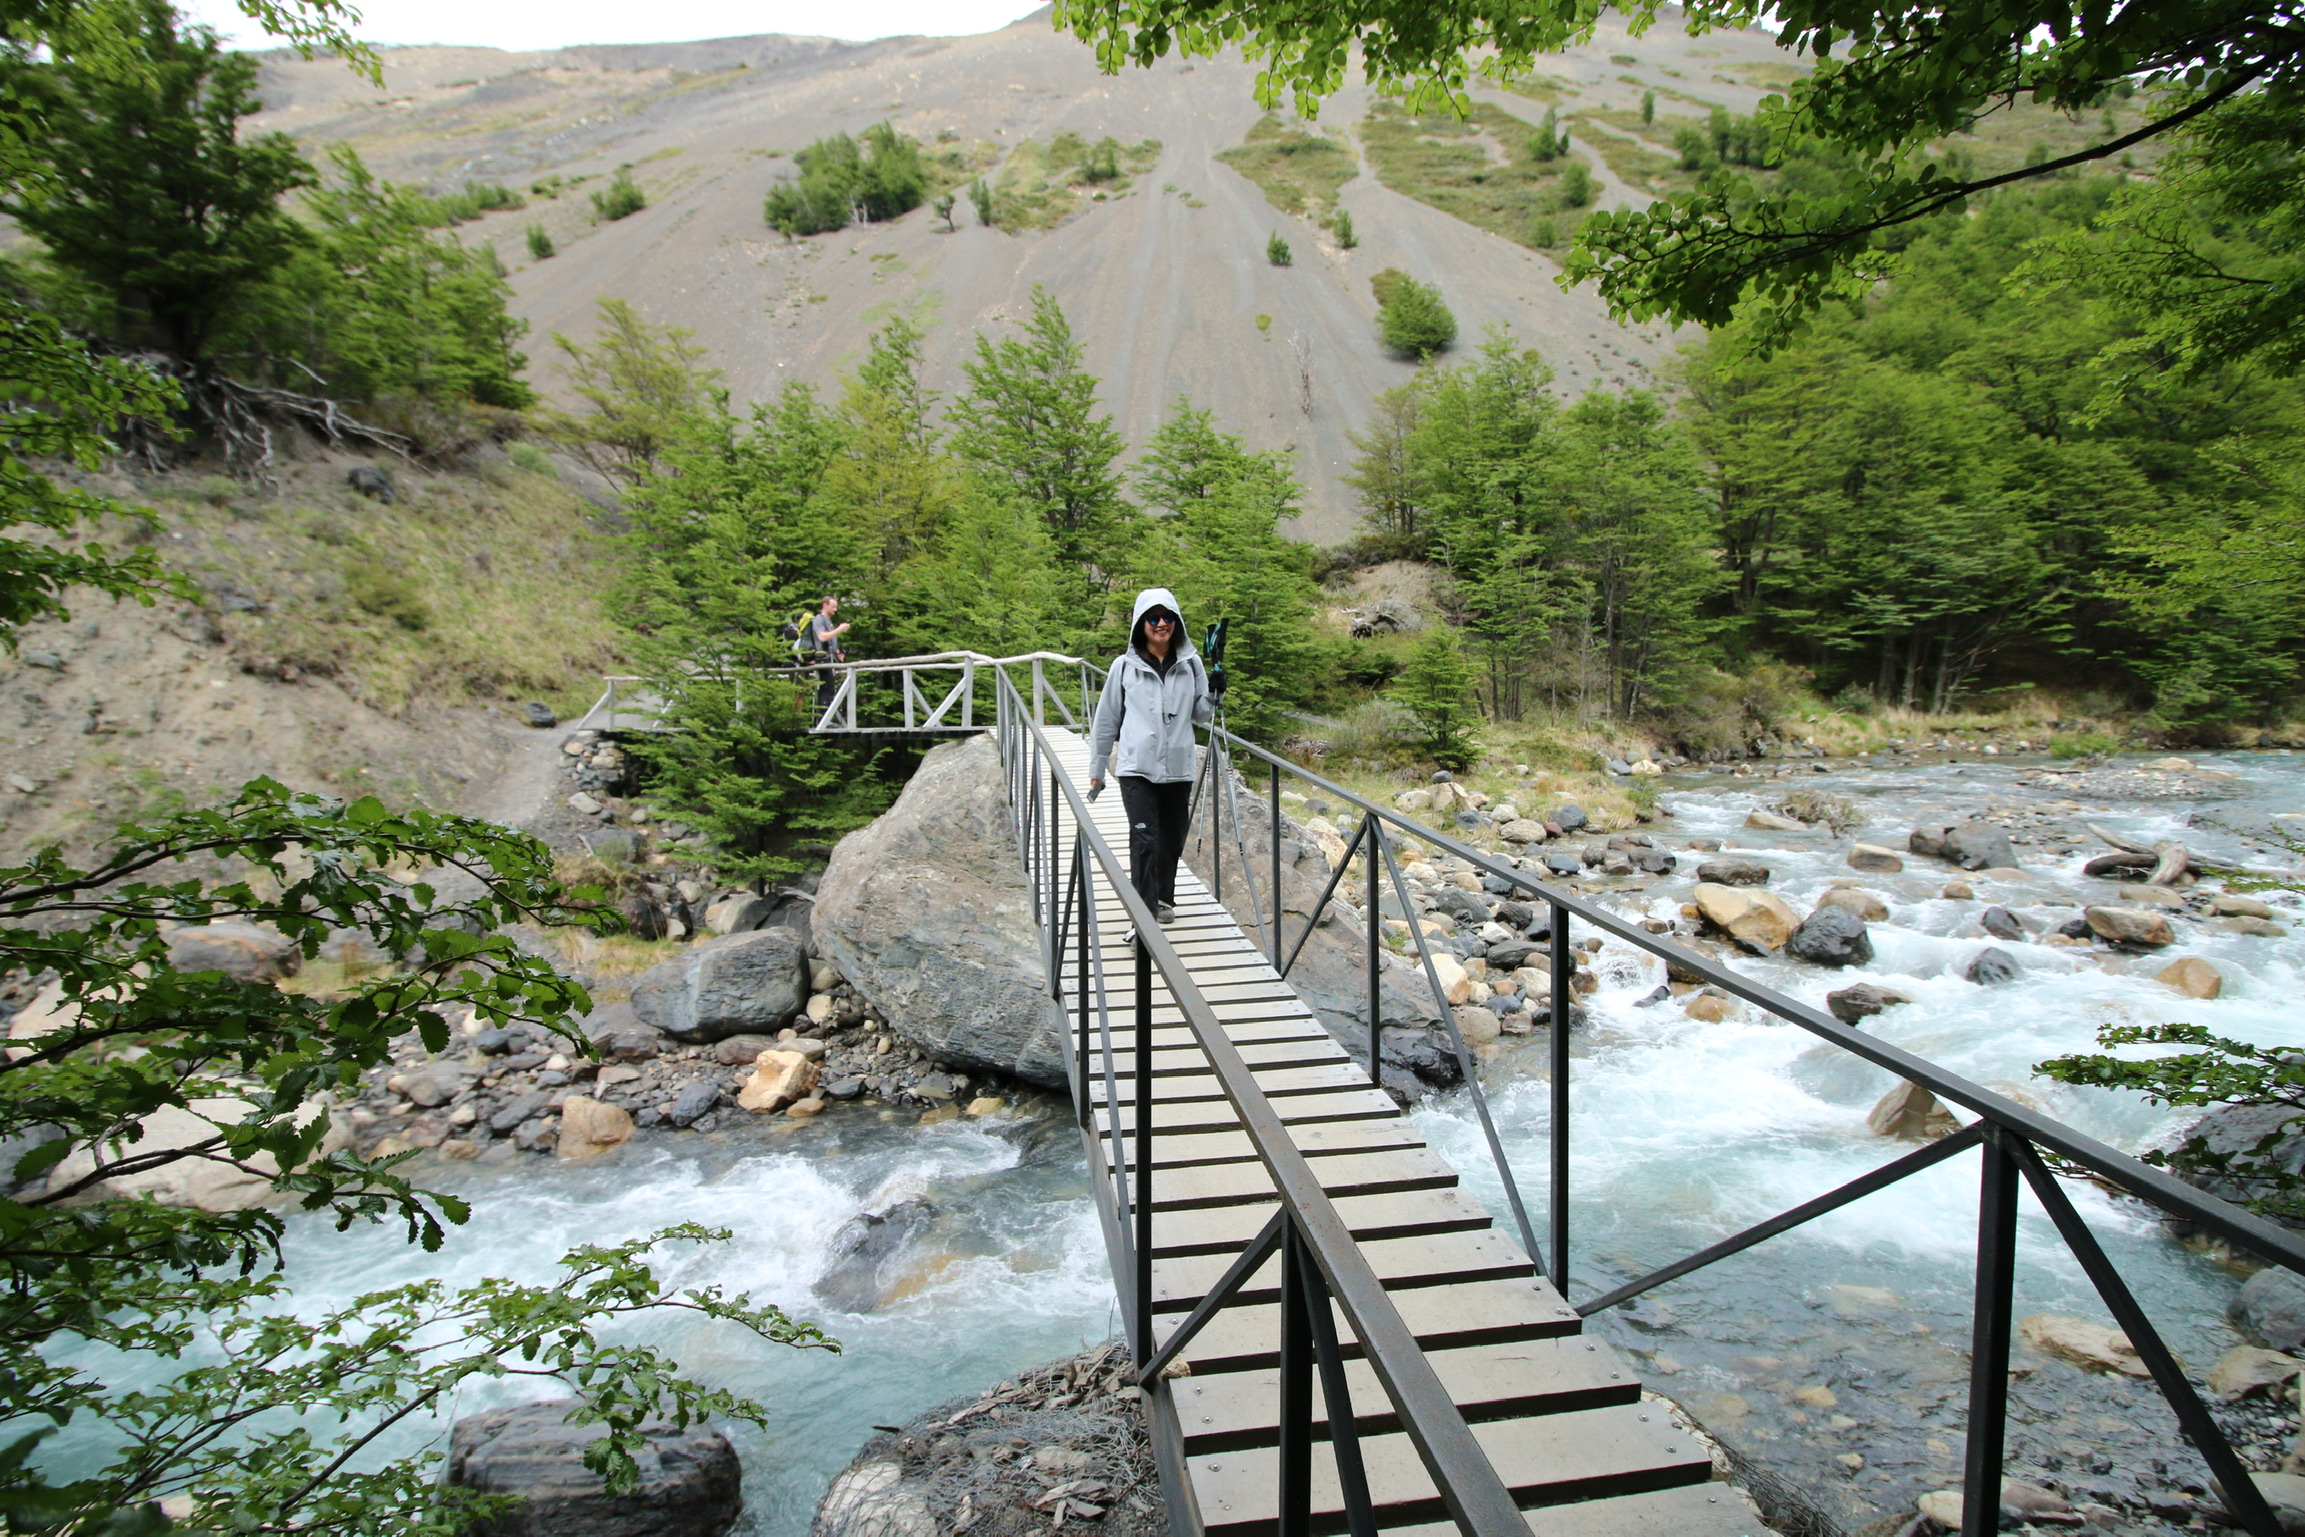 Crossing one of the many bridges in the park over that fresh blue glacial stream.